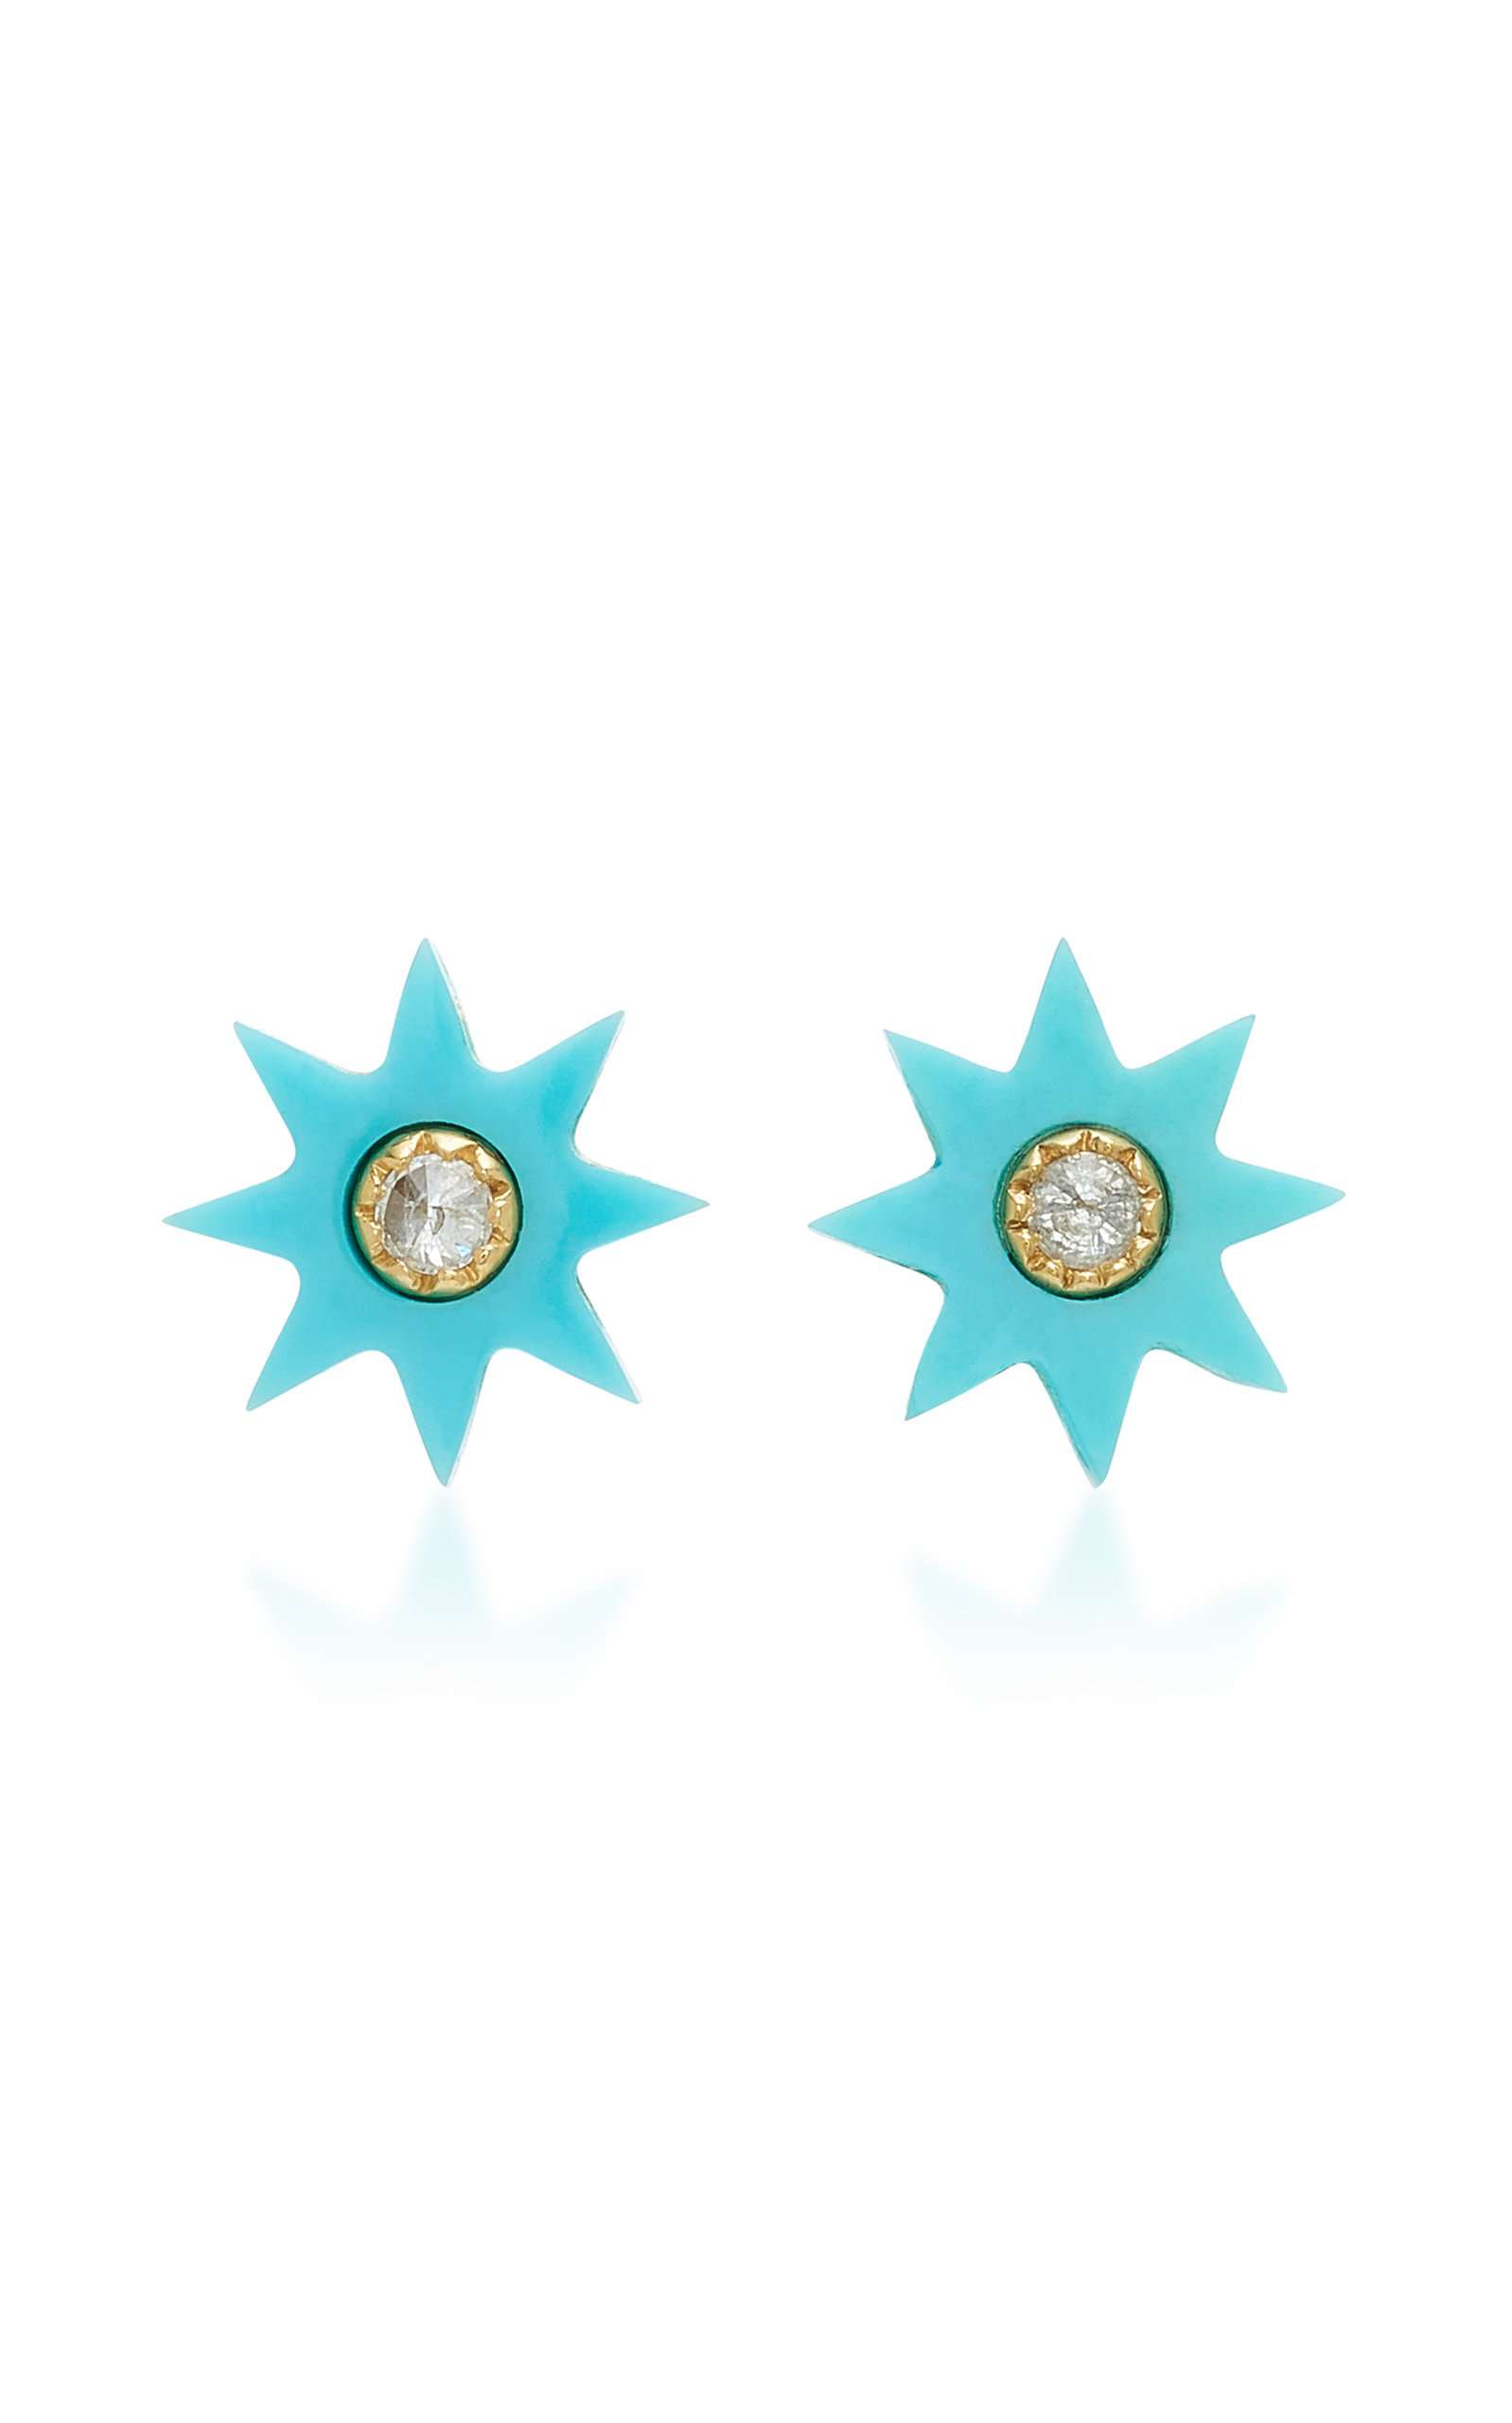 COLETTE JEWELRY TURQUOISE STARBURST STUD EARRINGS